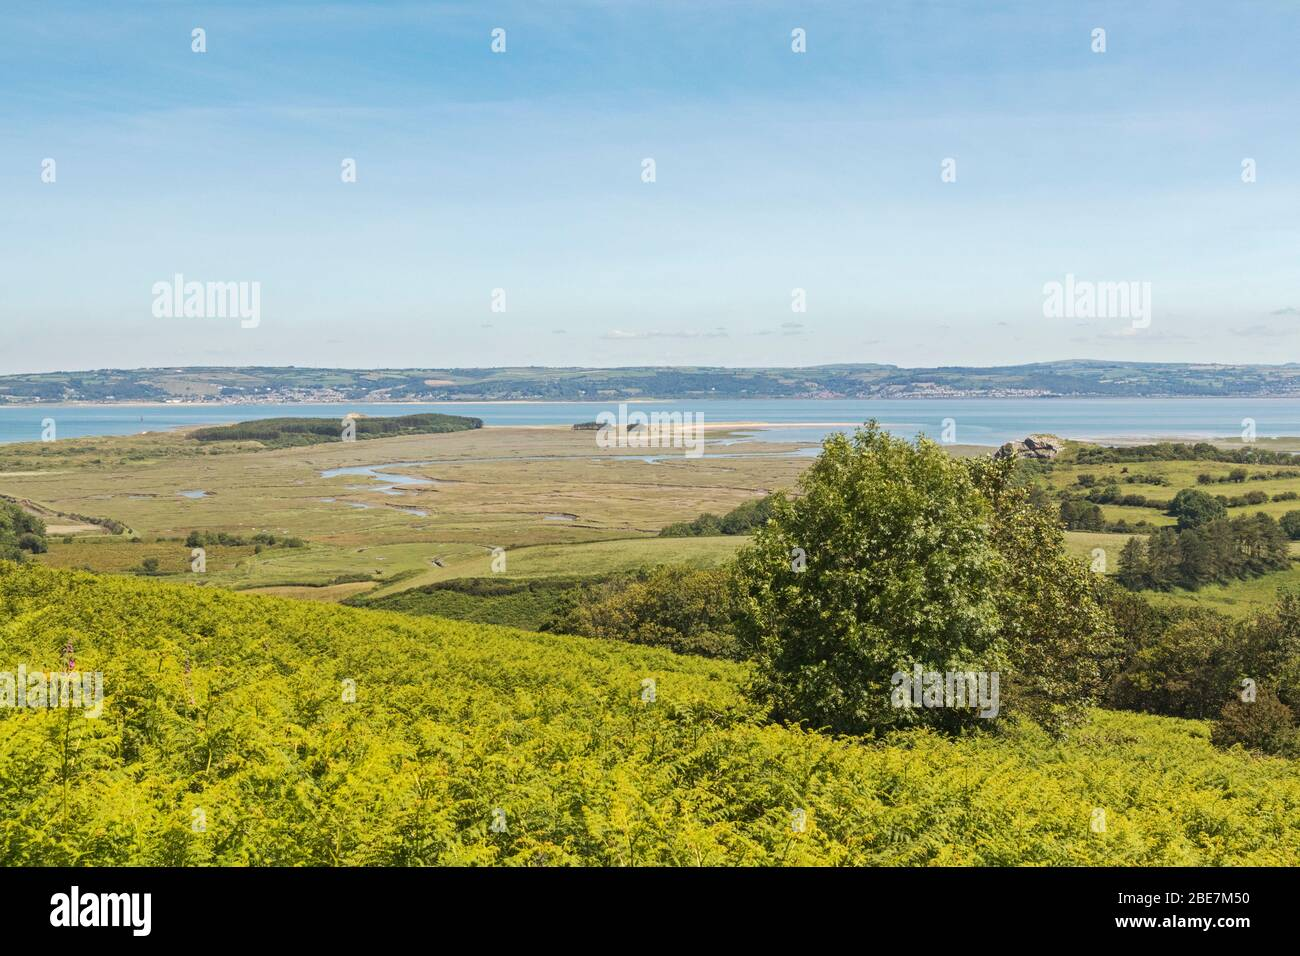 Loughor Estuary, view from Gower Peninsula, Swansea, South Wales, UK Stock Photo